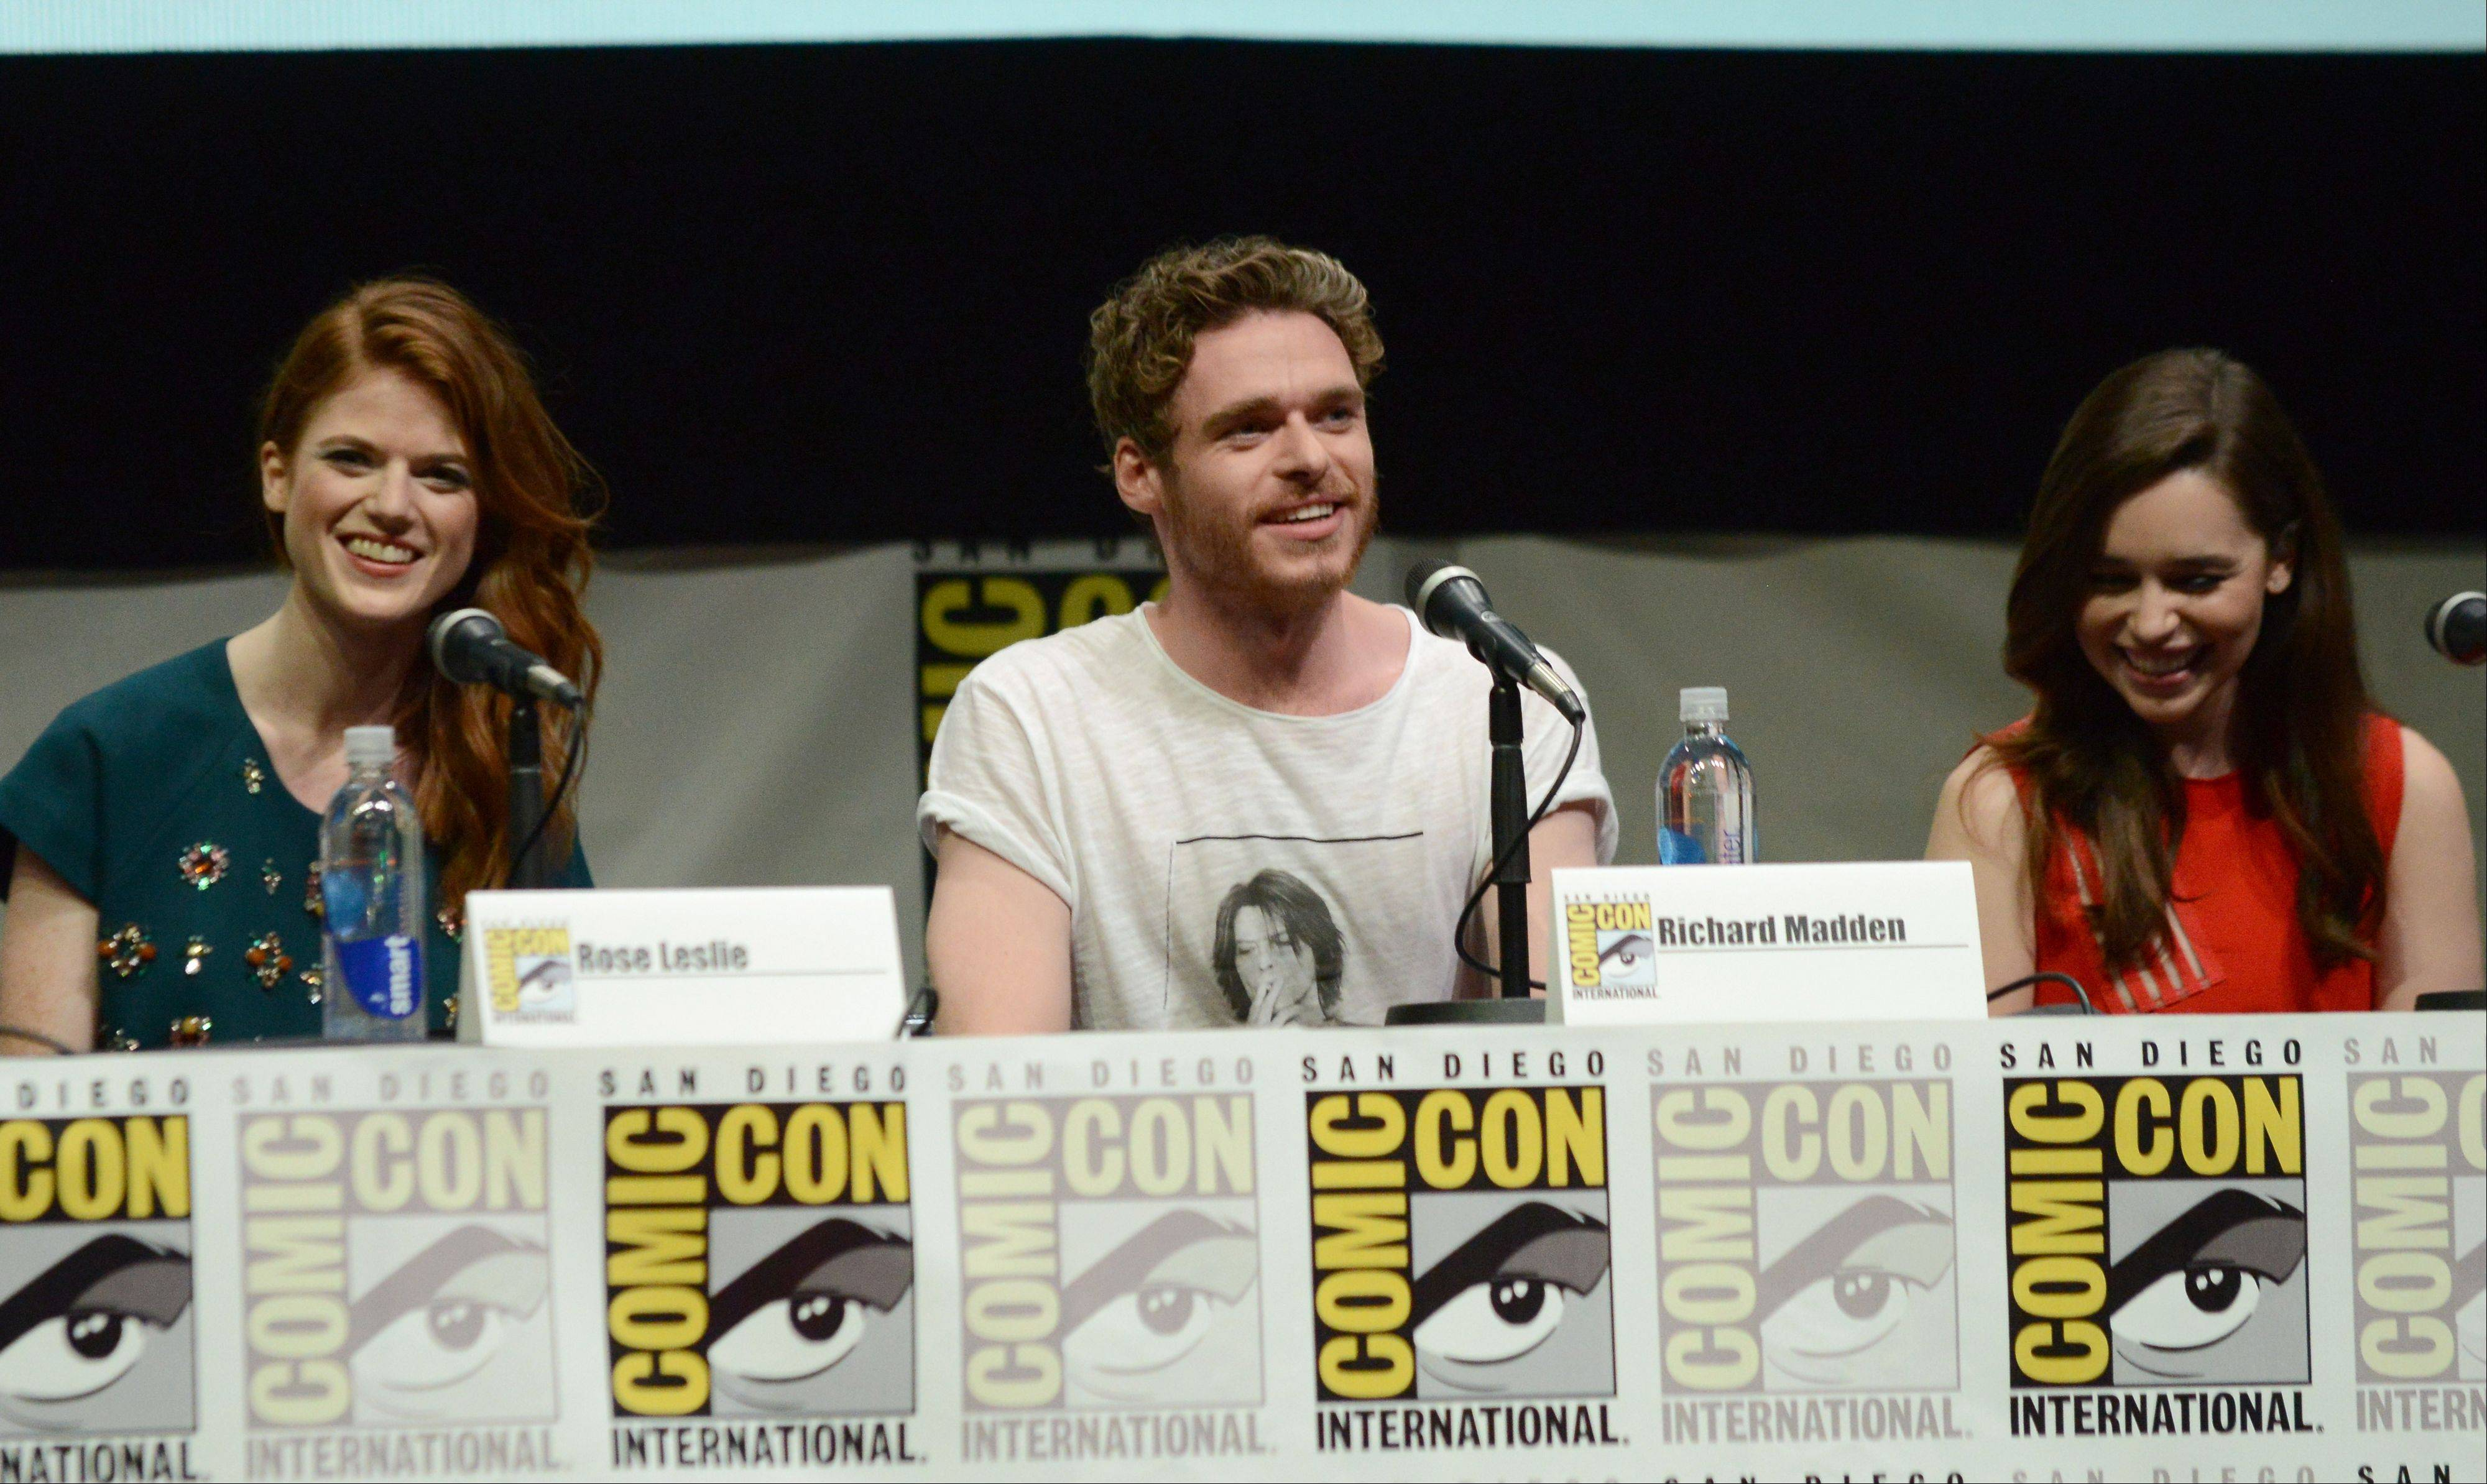 """Game of Thrones"" stars Rose Leslie (Ygritte), Richard Madden (Robb Stark) and Emilia Clarke (Daenerys Targaryen) participate in their show's panel Friday at Comic-Con International in San Diego."